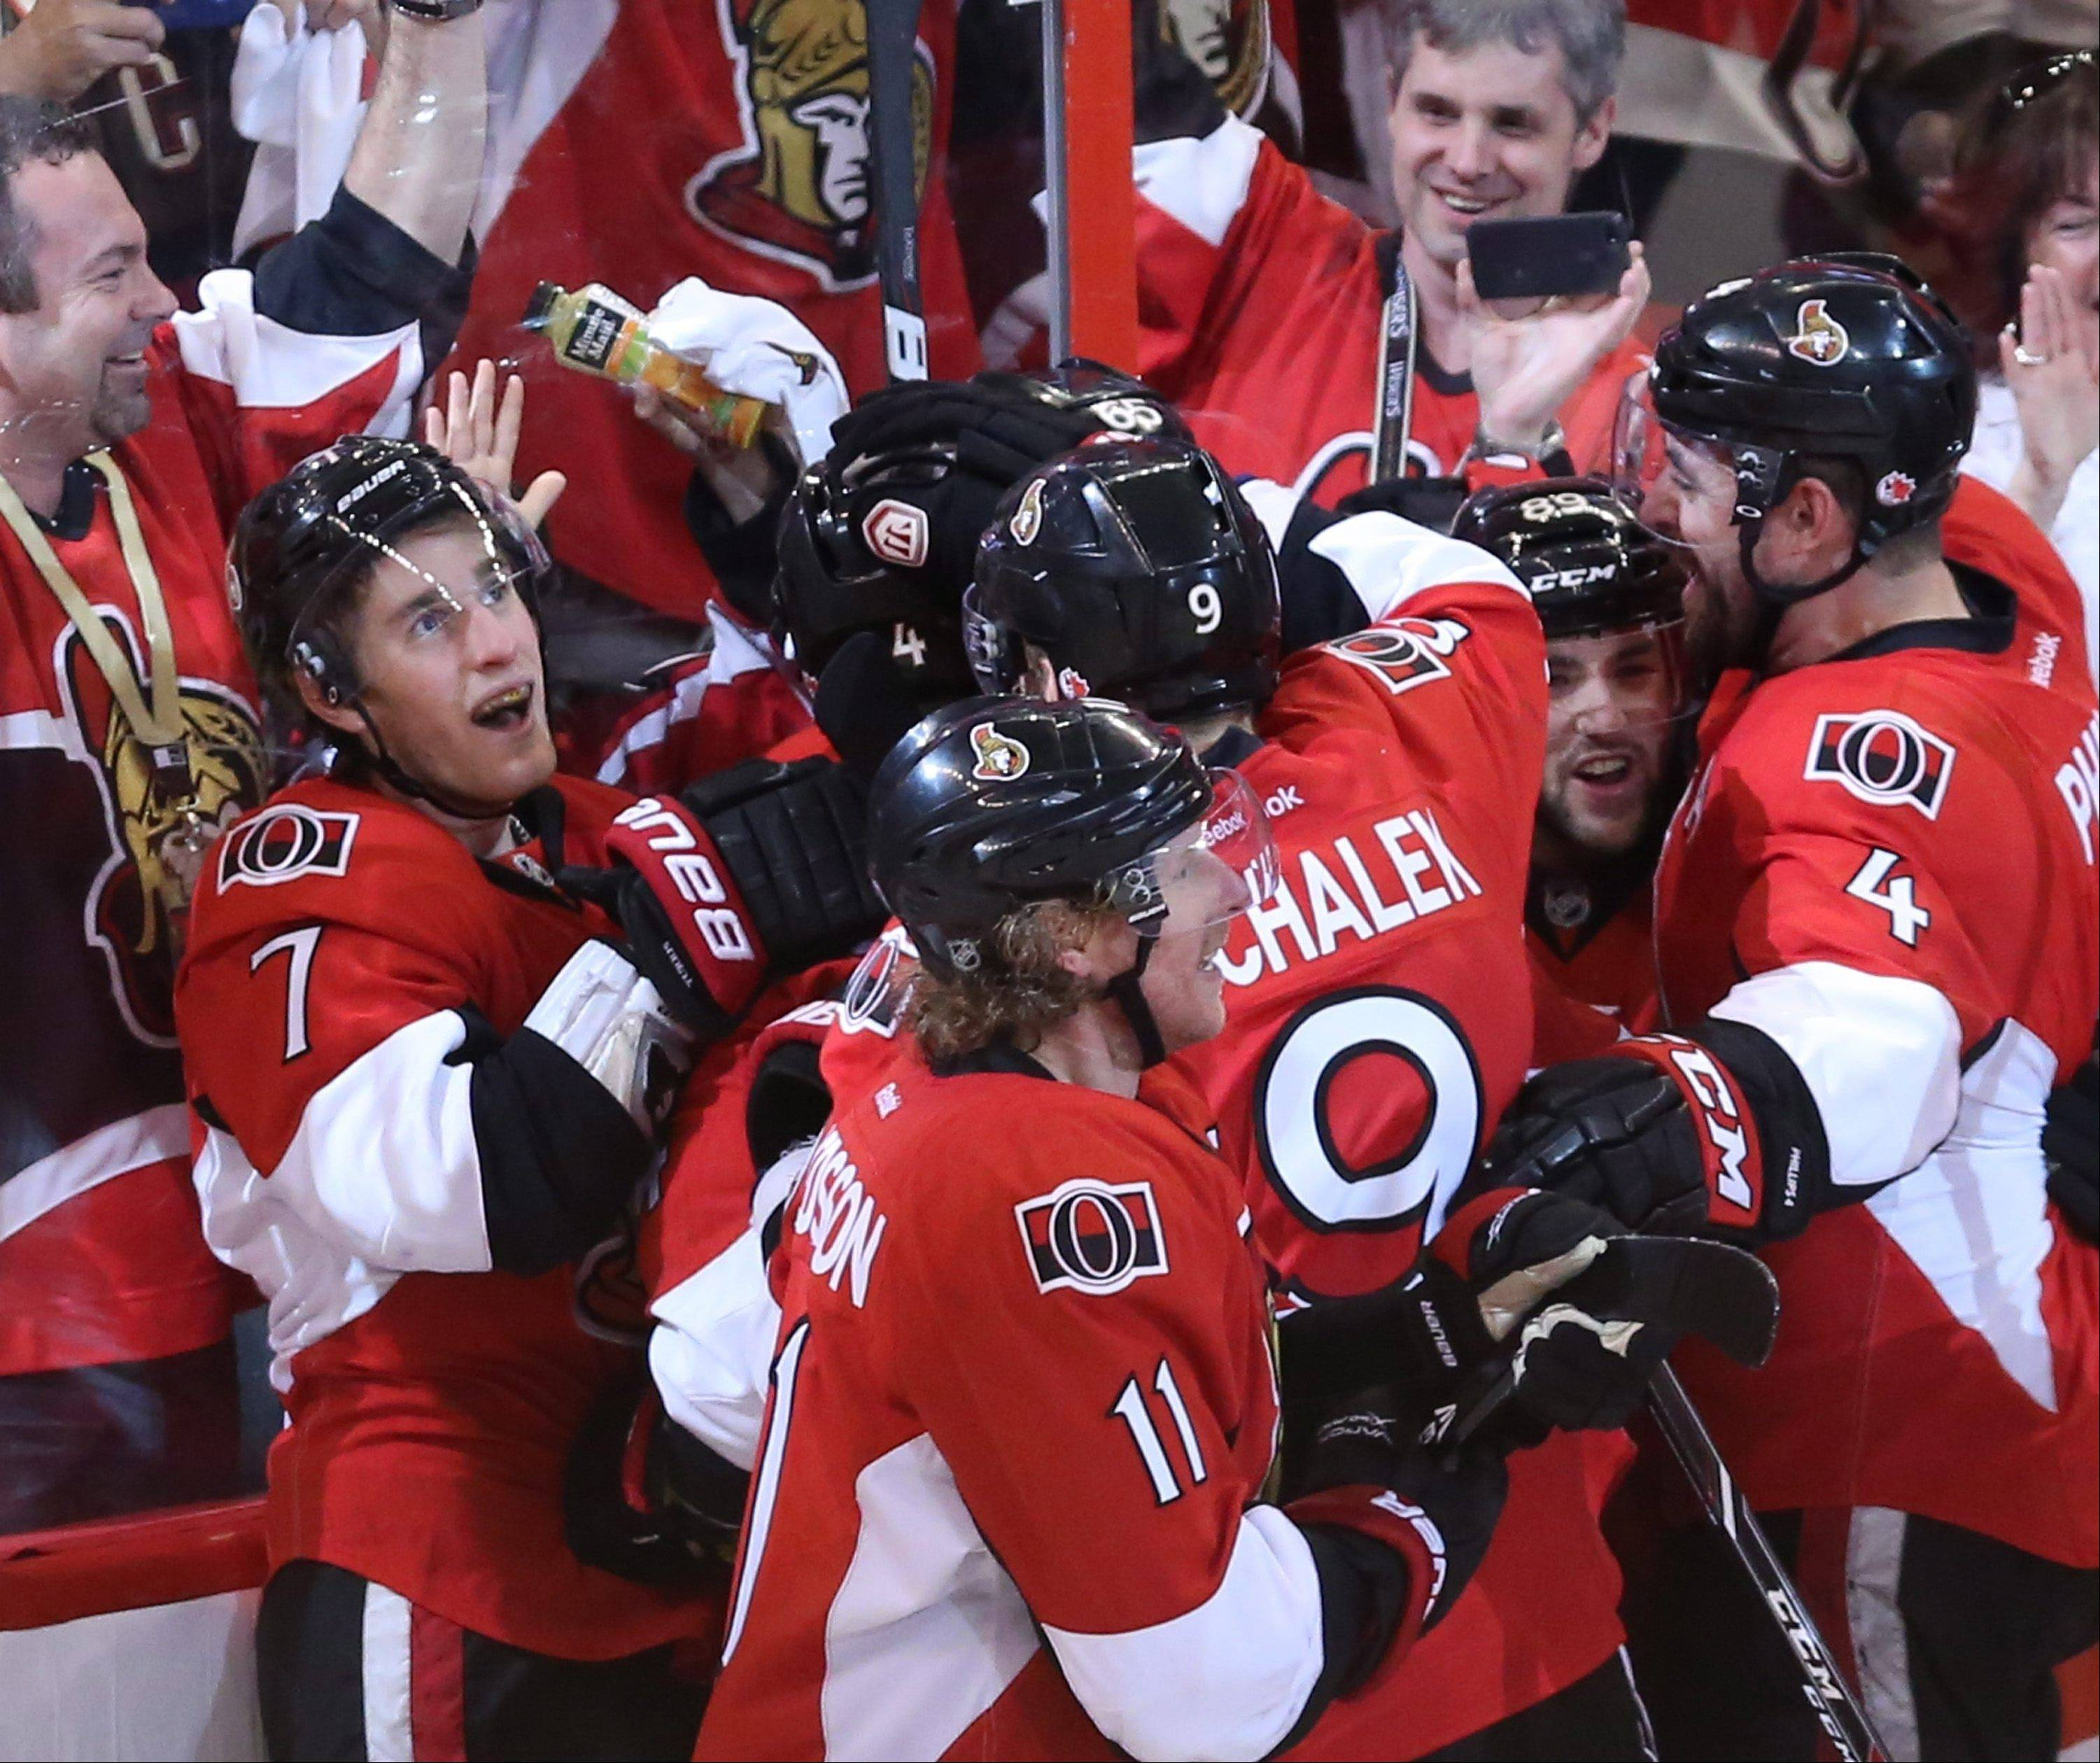 Ottawa Senators' Kyle Turris (7) and teammates celebrate a 3-2 overtime win against the Montreal Canadiens in Game 4 of an NHL hockey Stanley Cup playoff series in Ottawa, Ontario, on Tuesday, May 7, 2013.